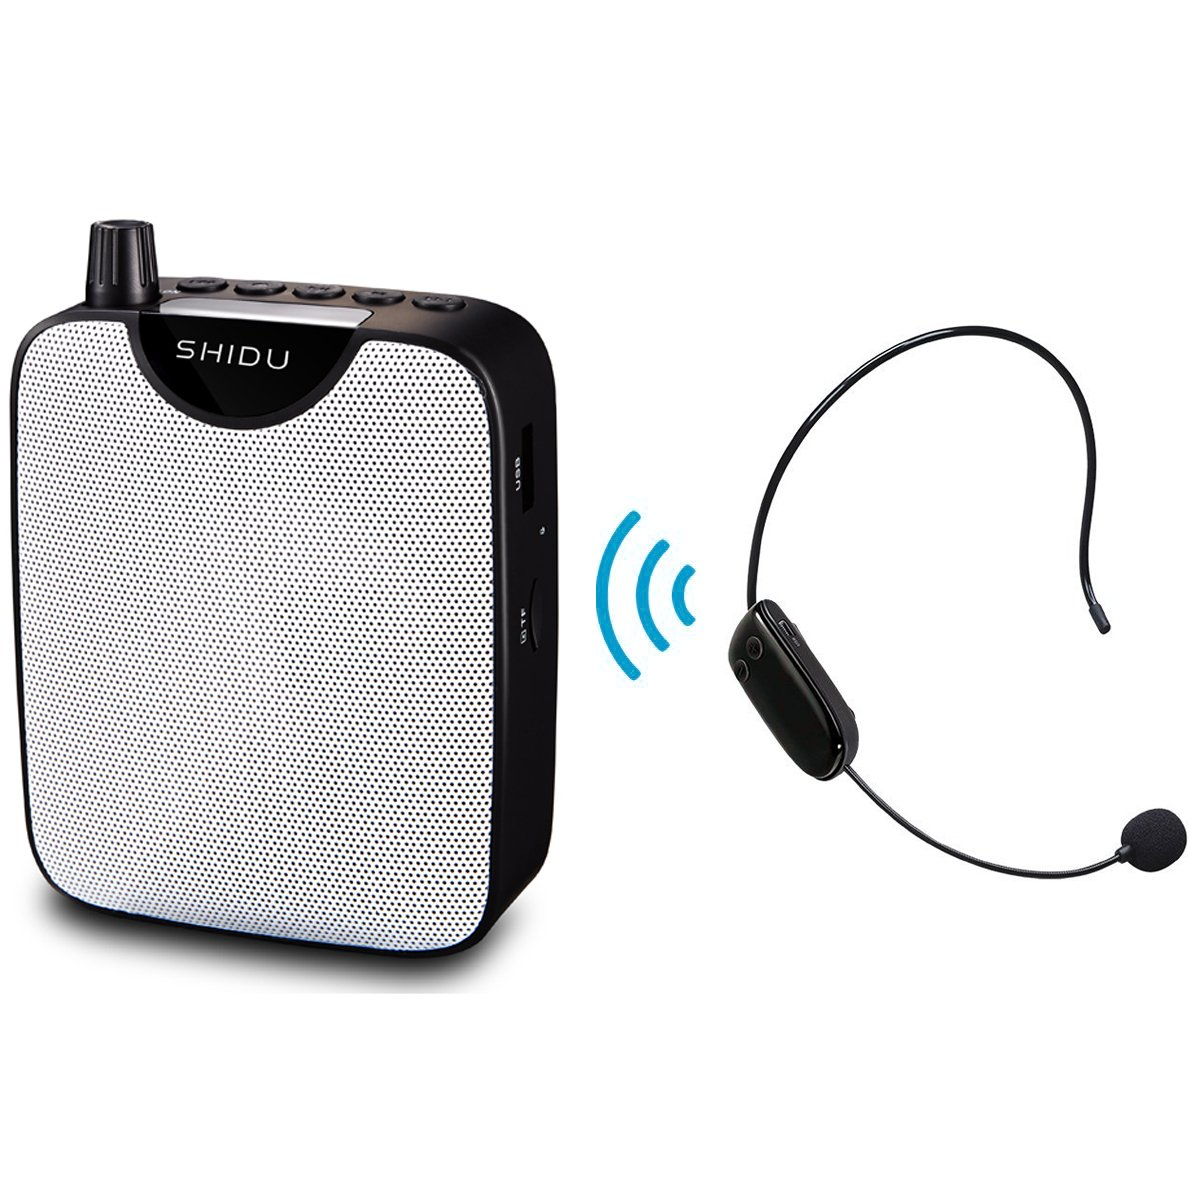 Mini Portable Voice Amplifier Rechargeable Pa System Speaker with UHF Compact Handheld Wireless Microphone Headset for Karaoke, Teachers, Tour Guides, Trainers SHIDU 4330238073